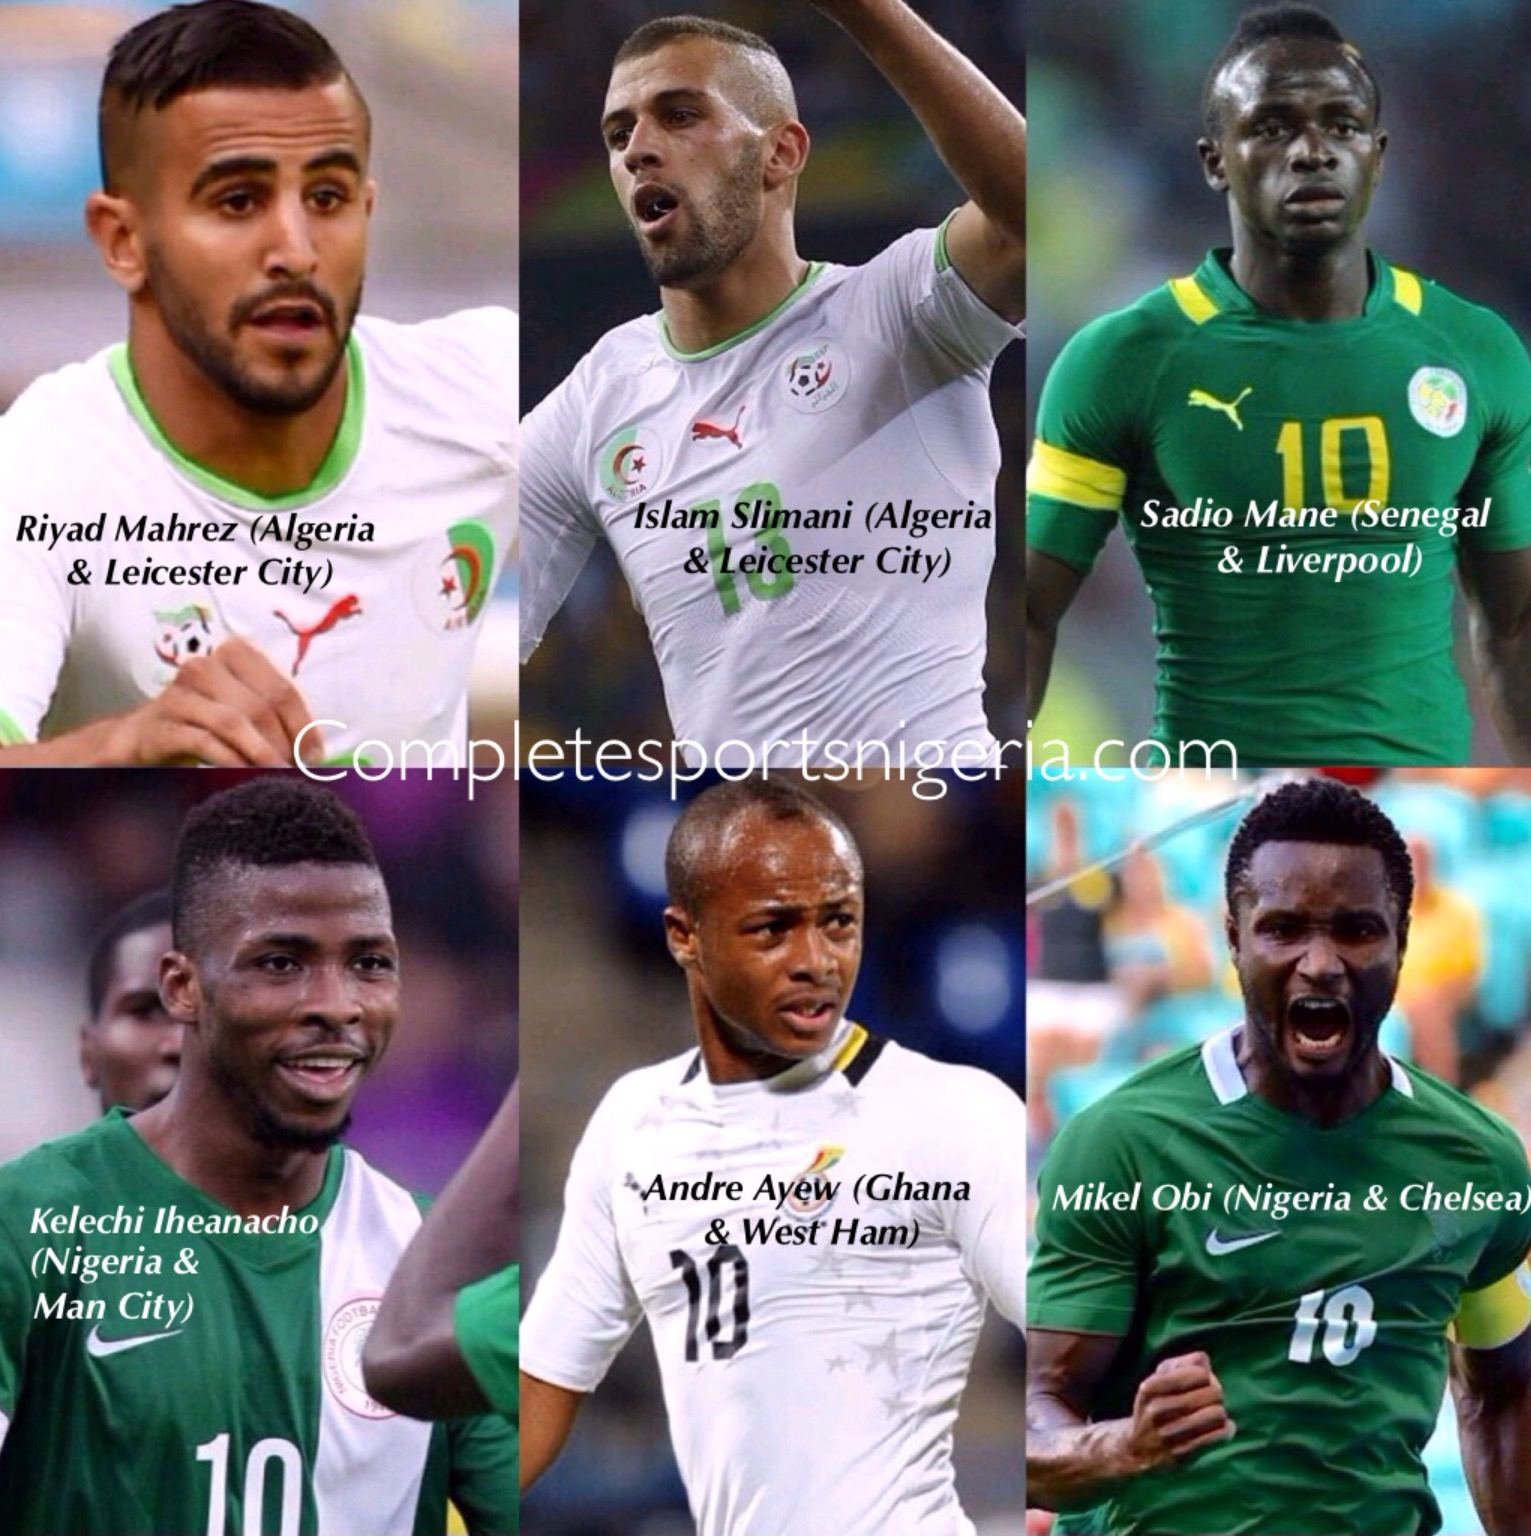 Odegbami: 2016 Africa's Best Player Award – Who Will Win It?